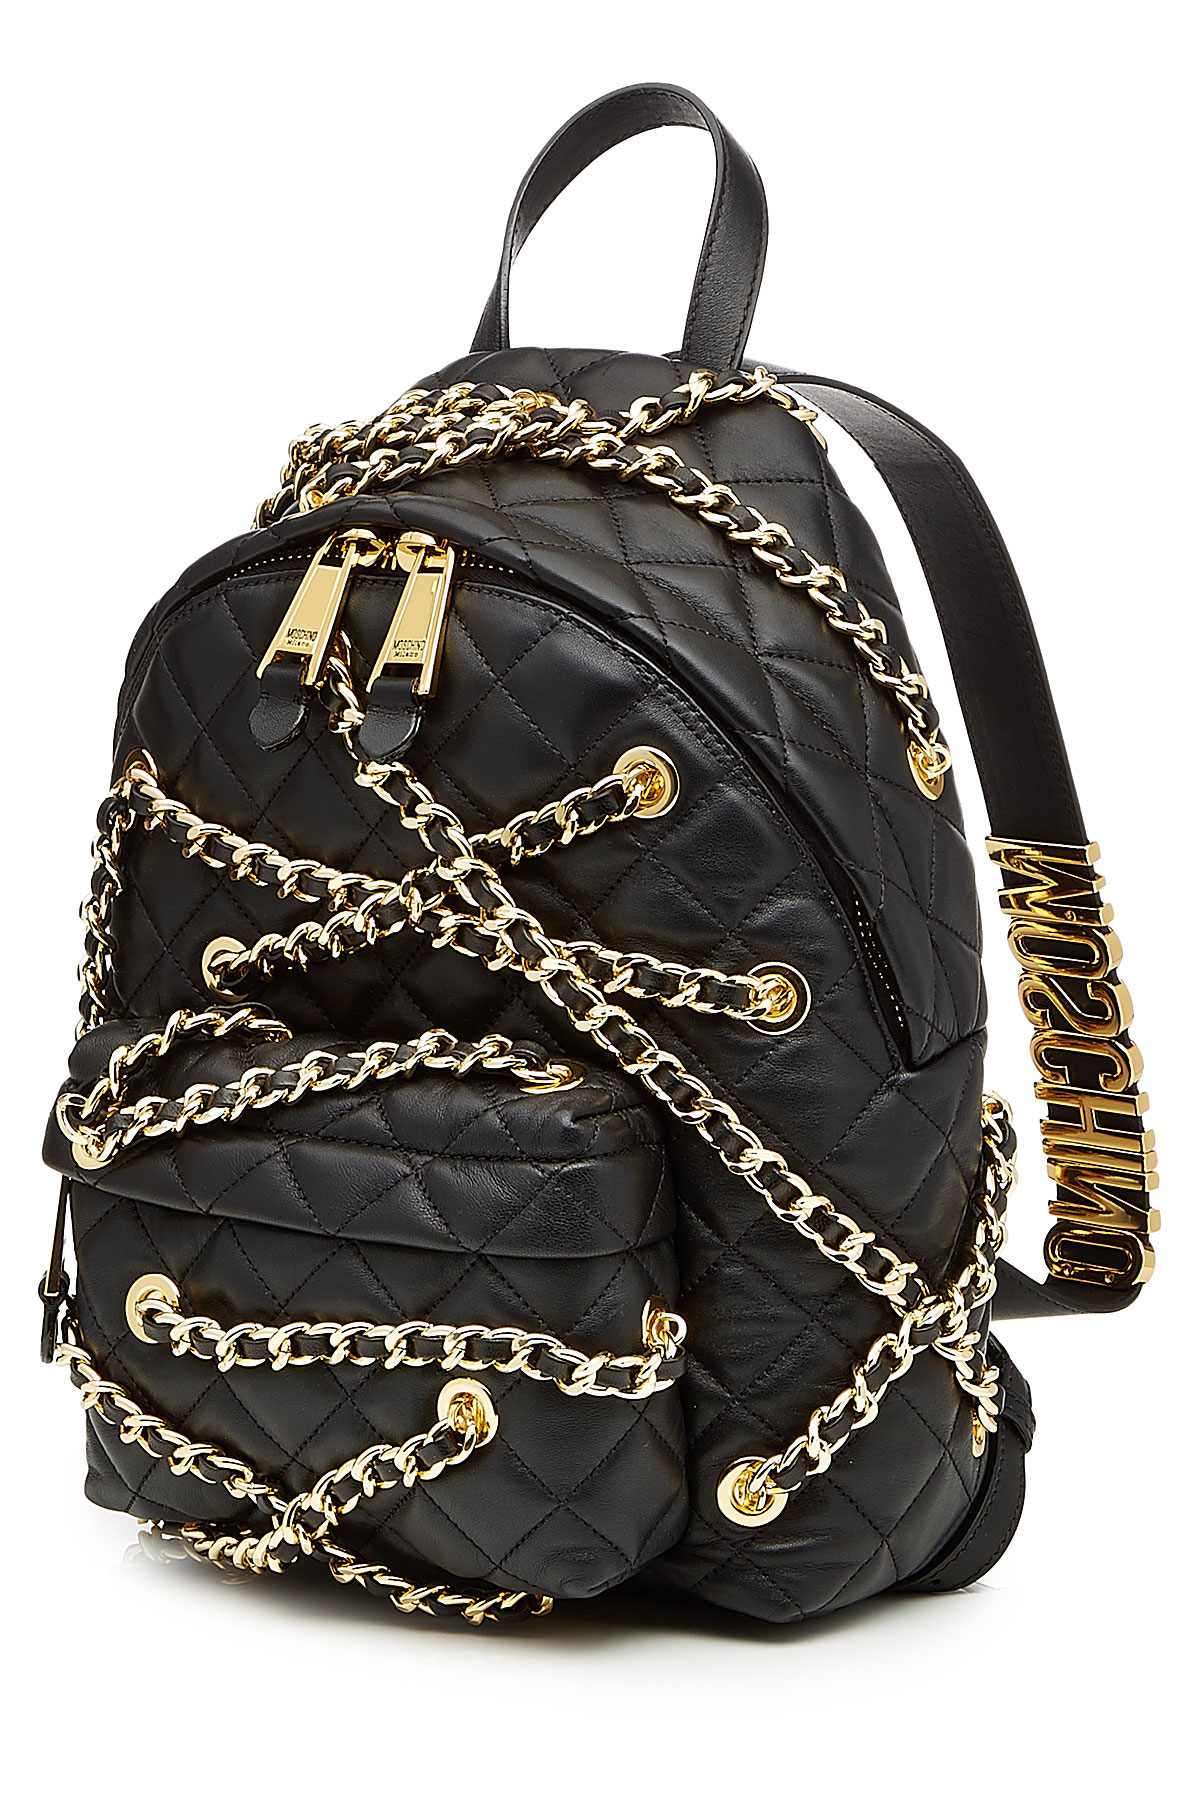 Moschino Quilted Leather Backpack With Gold Tone Chains